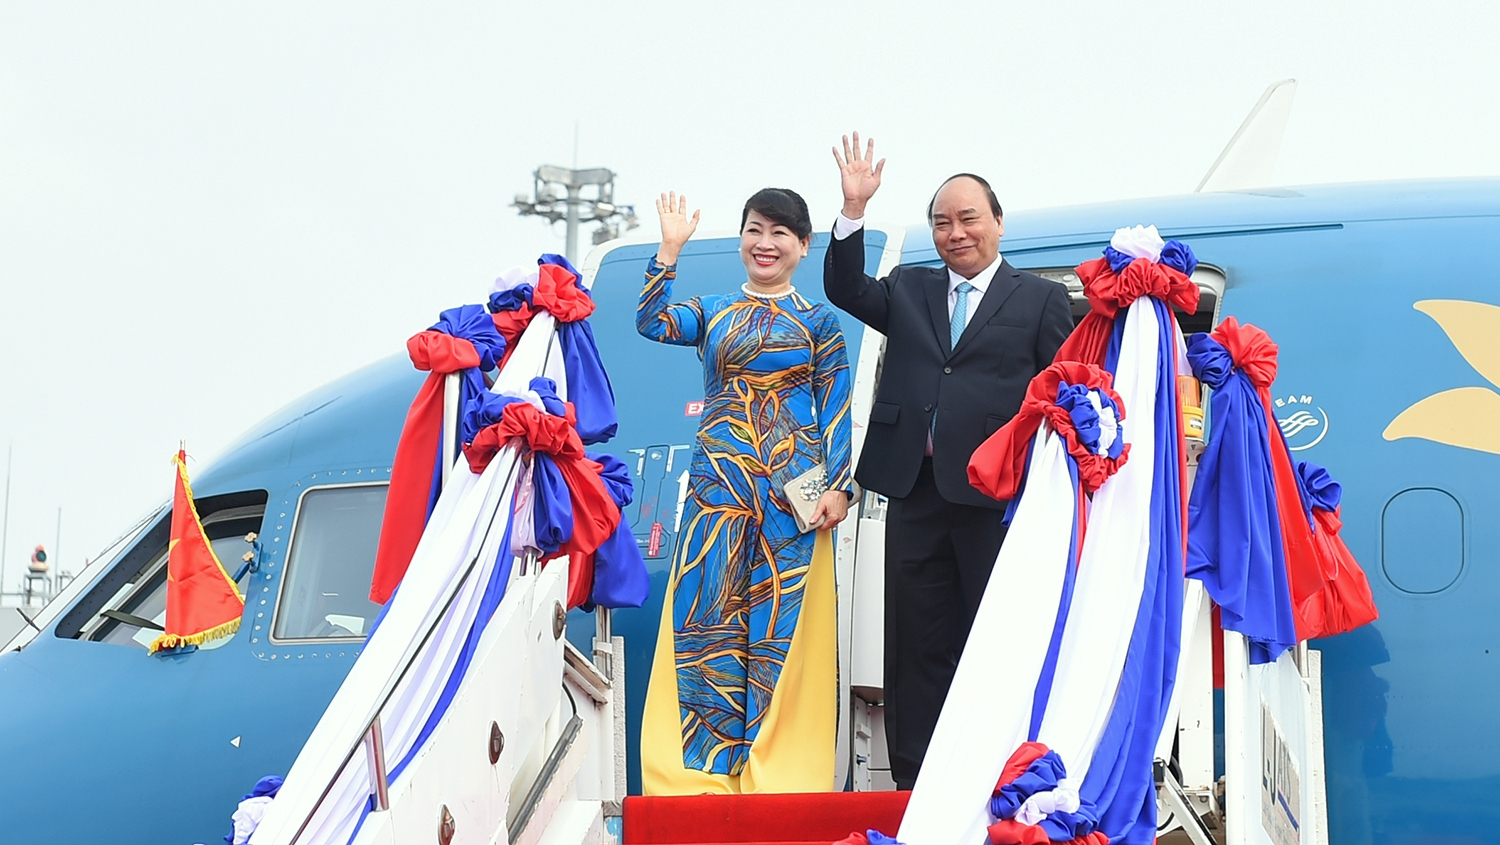 April 24-30: PM's visit to Laos, Cambodia helps foster bilateral ties